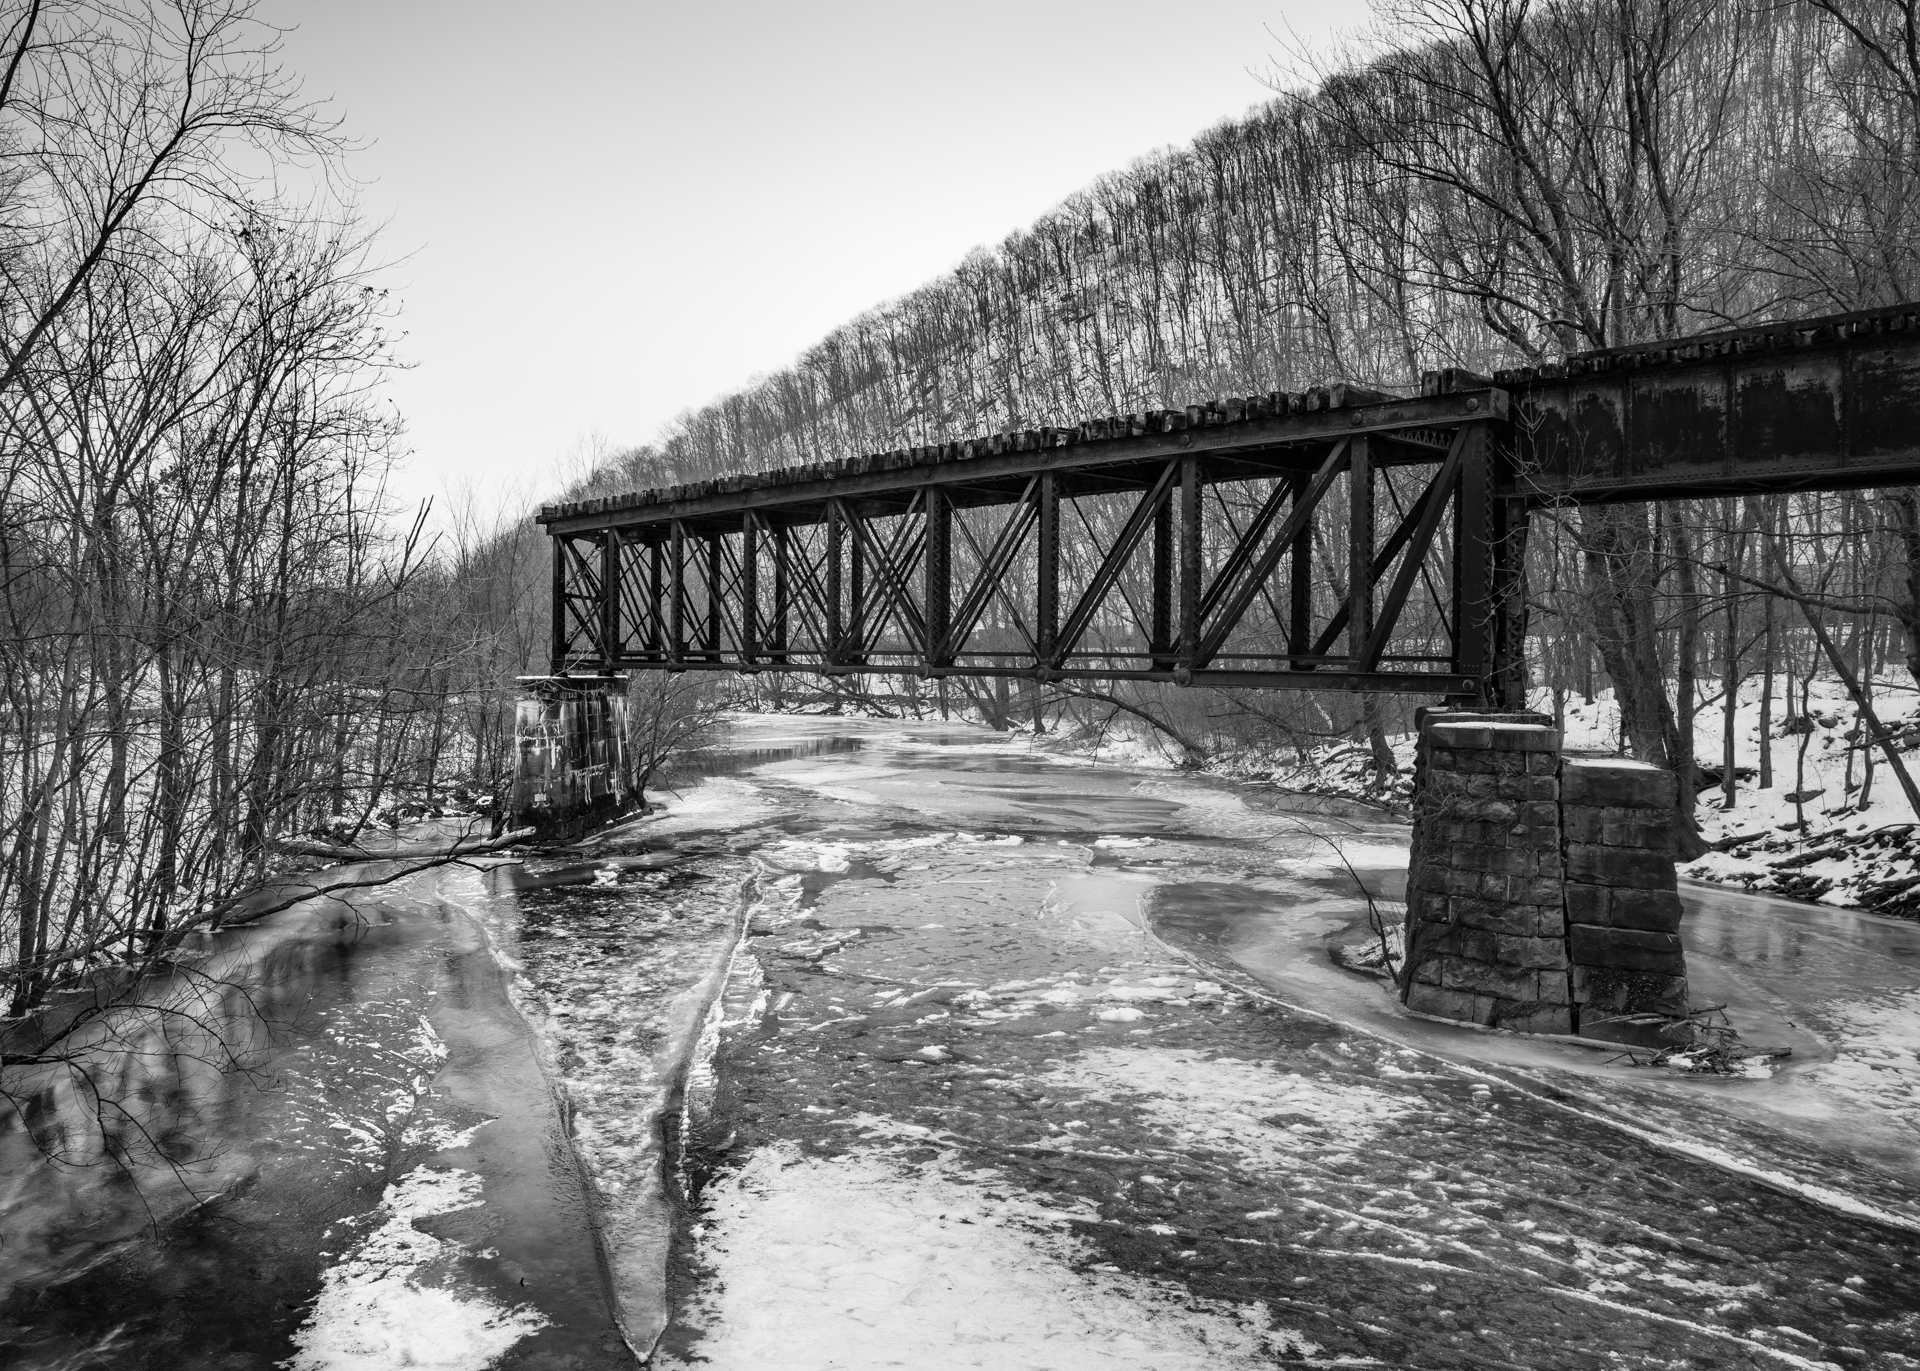 Abandoned Pratt Deck Truss Bridge, spanning the Little Juniata River, part of the remains of the former Lewisburg & Tyrone Railroad, a PRR subsidiary.